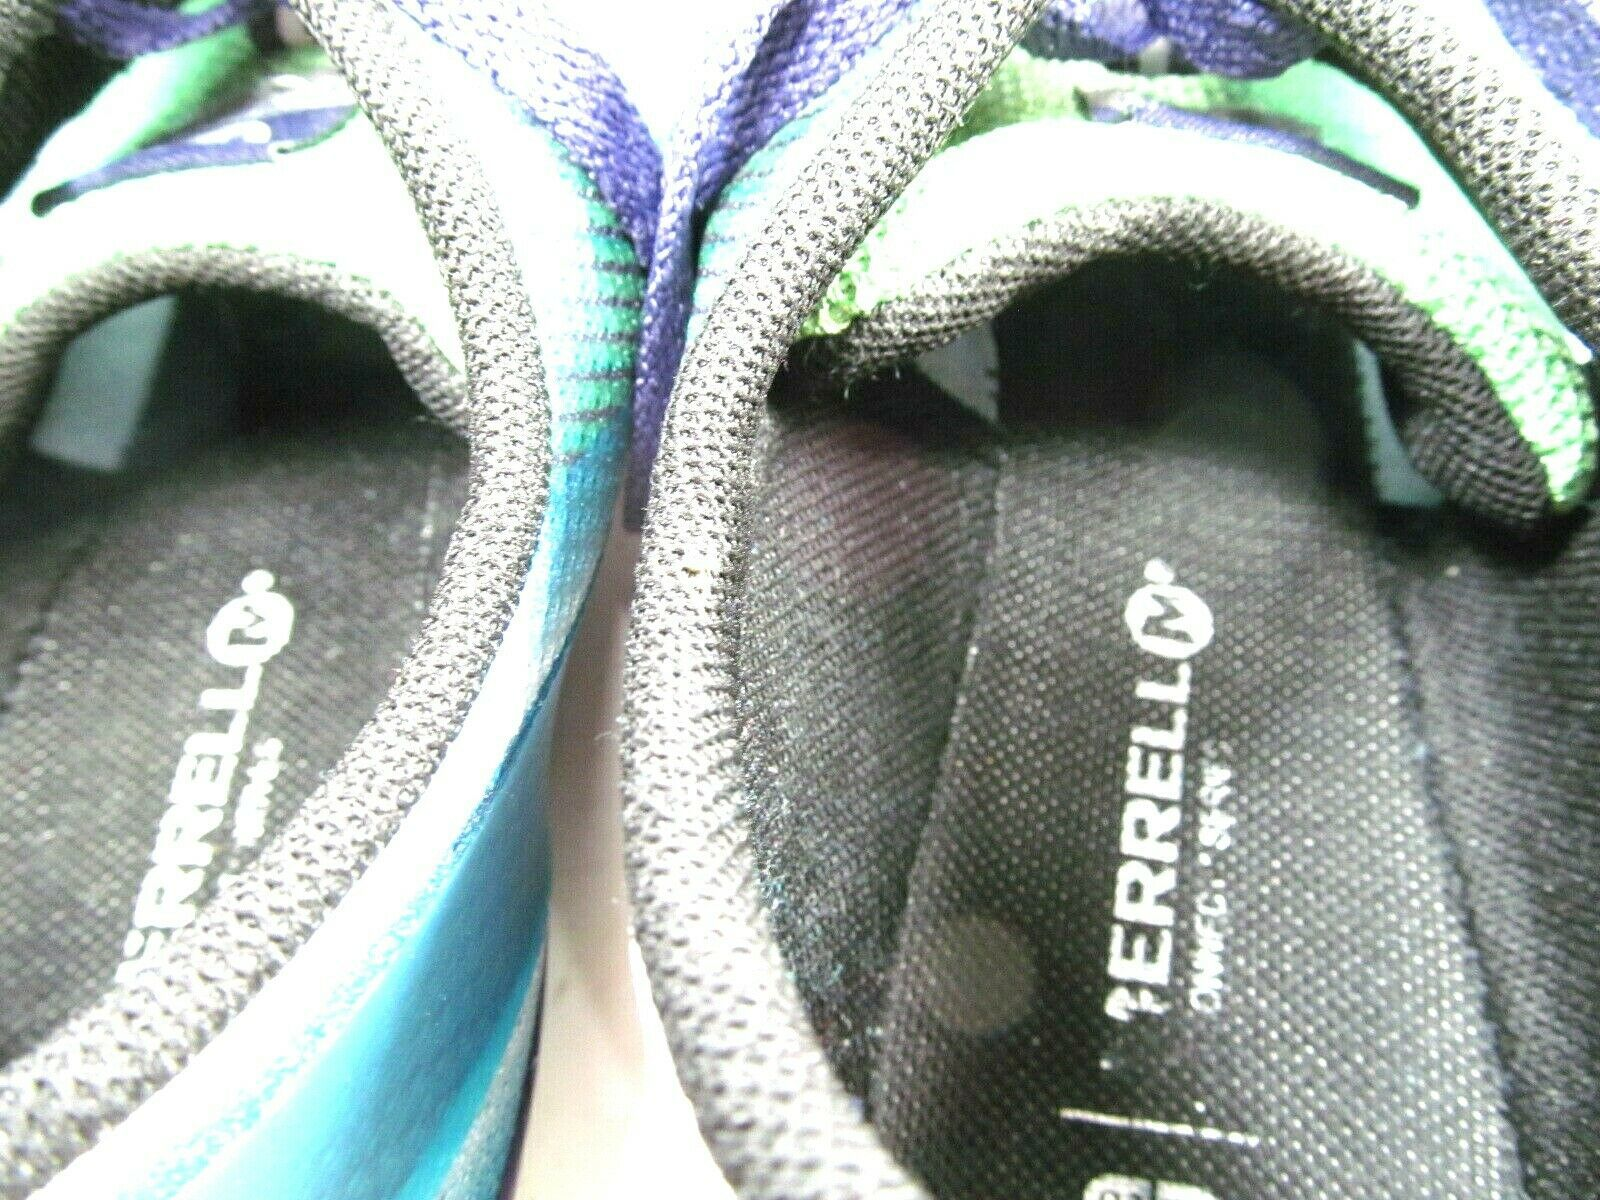 Merrell M Connect Womens Vapor Glove 2 Shoes Bright Green And Purple Size US 10 image 6